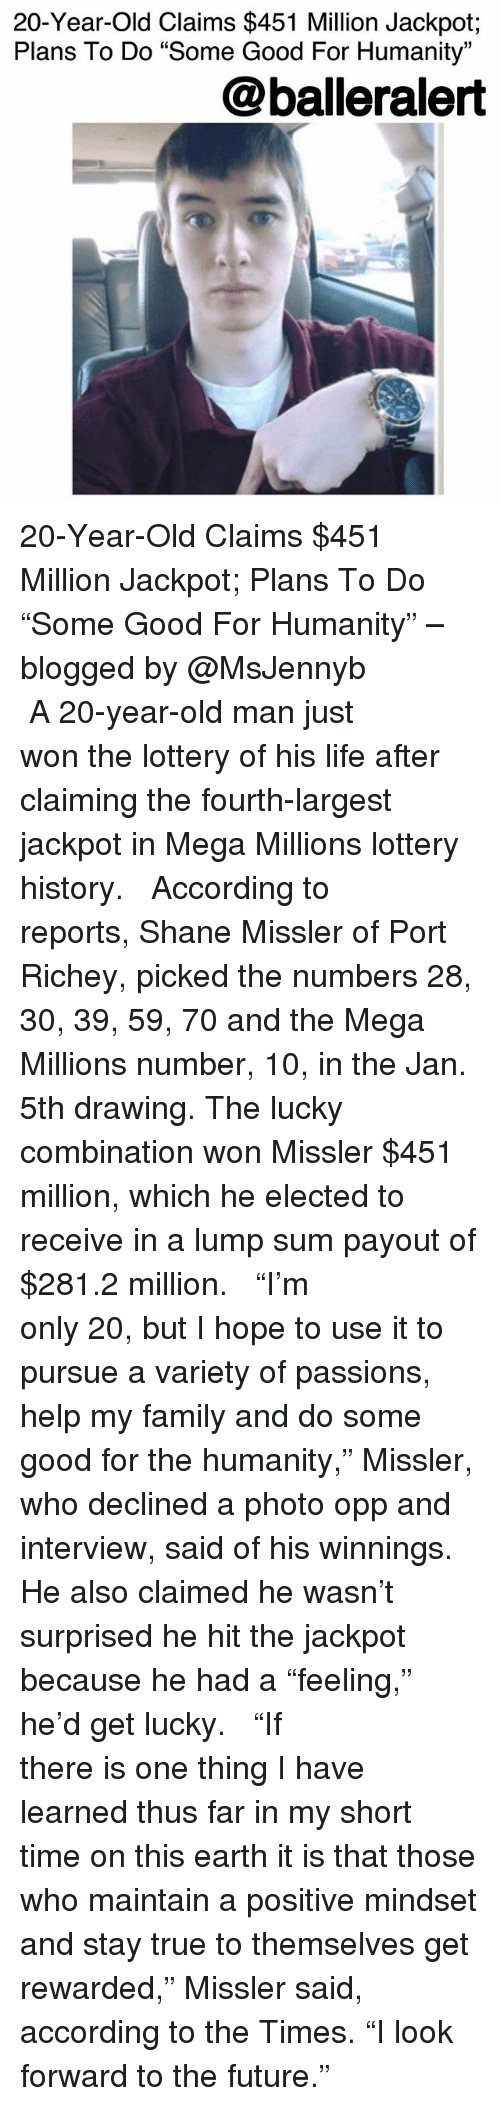 "Family, Future, and Life: 20-Year-Old Claims $451 Million Jackpot;  Plans To Do ""Some Good For Humanity""  @balleralert 20-Year-Old Claims $451 Million Jackpot; Plans To Do ""Some Good For Humanity"" – blogged by @MsJennyb ⠀⠀⠀⠀⠀⠀⠀ ⠀⠀⠀⠀⠀⠀⠀ A 20-year-old man just won the lottery of his life after claiming the fourth-largest jackpot in Mega Millions lottery history. ⠀⠀⠀⠀⠀⠀⠀ ⠀⠀⠀⠀⠀⠀⠀ According to reports, Shane Missler of Port Richey, picked the numbers 28, 30, 39, 59, 70 and the Mega Millions number, 10, in the Jan. 5th drawing. The lucky combination won Missler $451 million, which he elected to receive in a lump sum payout of $281.2 million. ⠀⠀⠀⠀⠀⠀⠀ ⠀⠀⠀⠀⠀⠀⠀ ""I'm only 20, but I hope to use it to pursue a variety of passions, help my family and do some good for the humanity,"" Missler, who declined a photo opp and interview, said of his winnings. He also claimed he wasn't surprised he hit the jackpot because he had a ""feeling,"" he'd get lucky. ⠀⠀⠀⠀⠀⠀⠀ ⠀⠀⠀⠀⠀⠀⠀ ""If there is one thing I have learned thus far in my short time on this earth it is that those who maintain a positive mindset and stay true to themselves get rewarded,"" Missler said, according to the Times. ""I look forward to the future."""